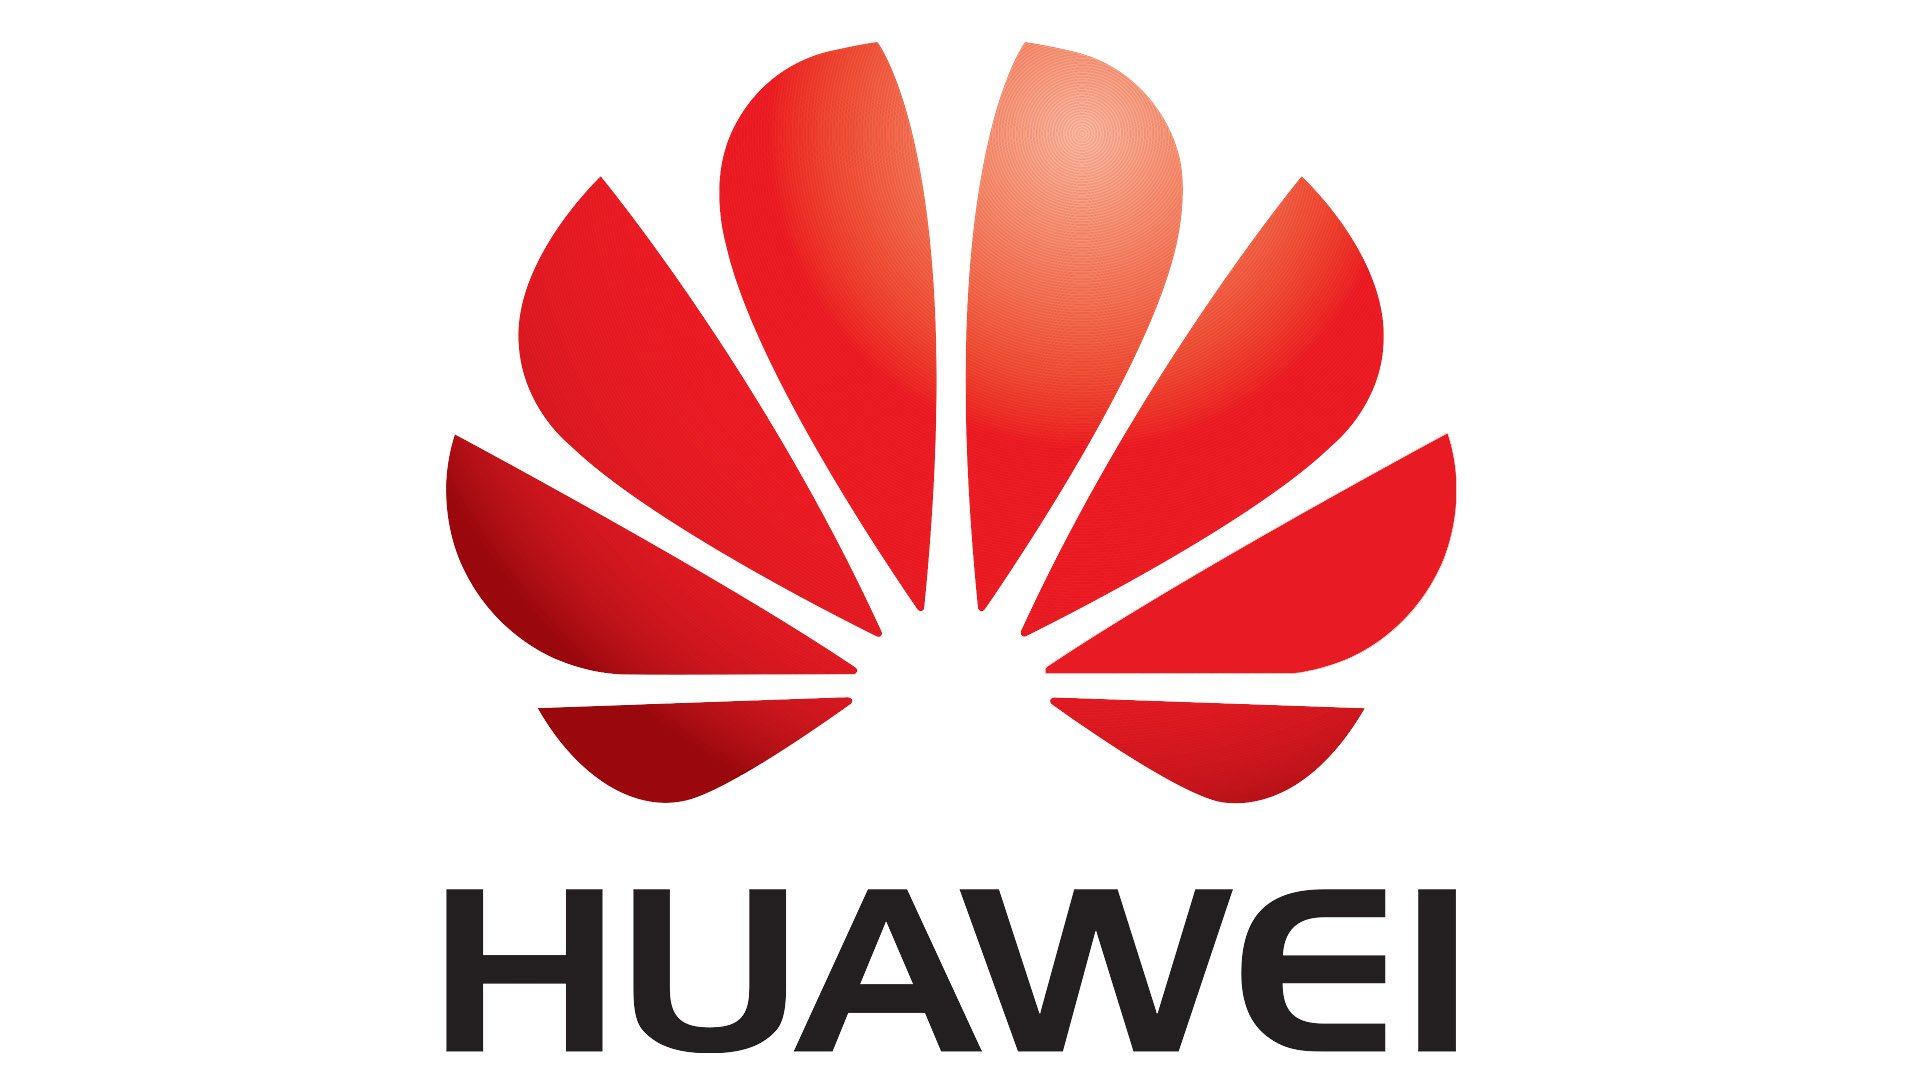 Google removes official support for Huawei after blacklist